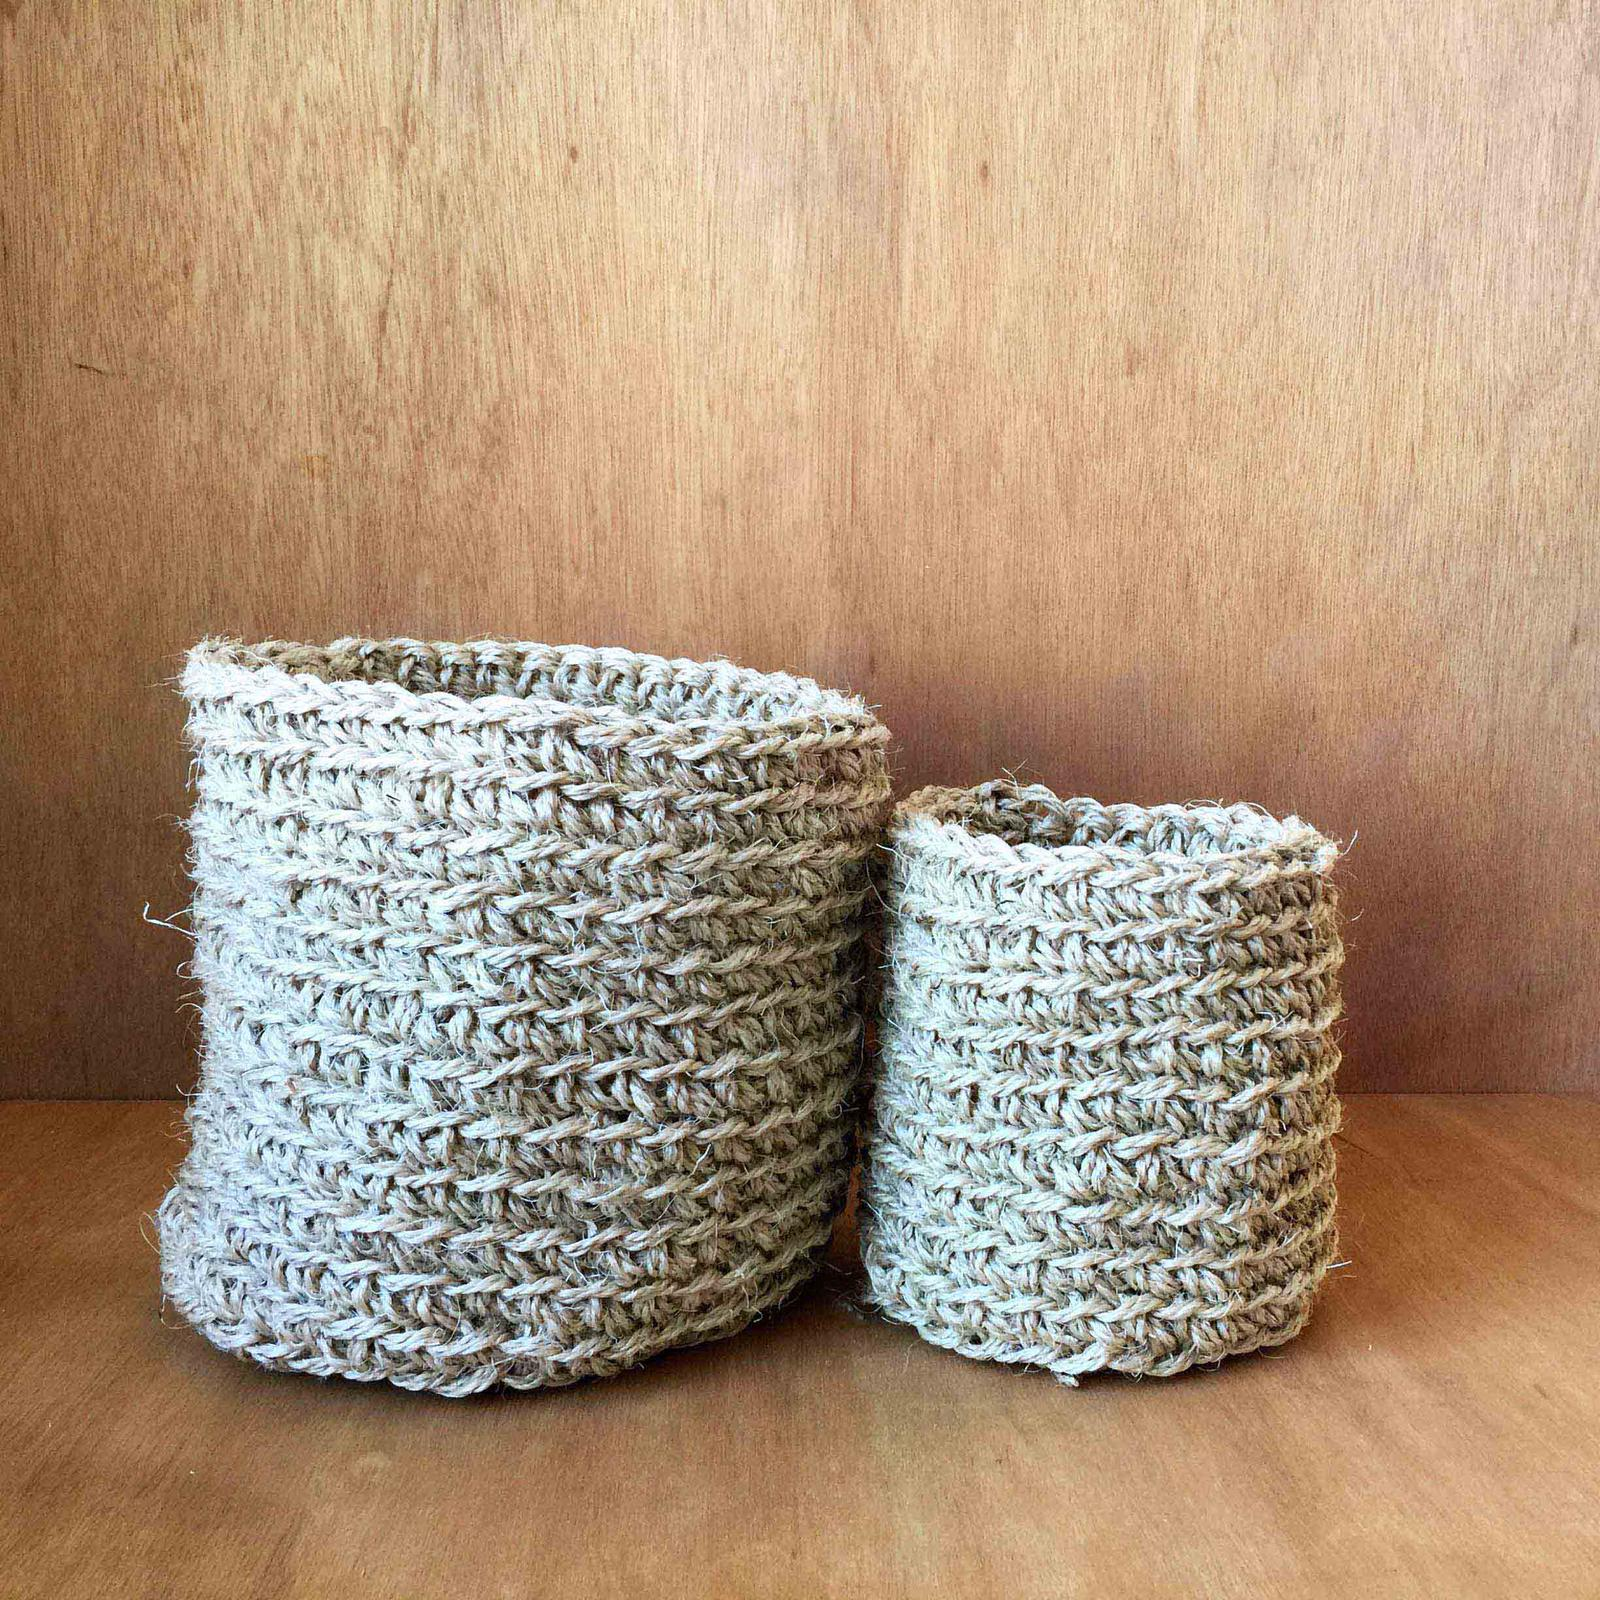 Hand made sisal baskets – small.